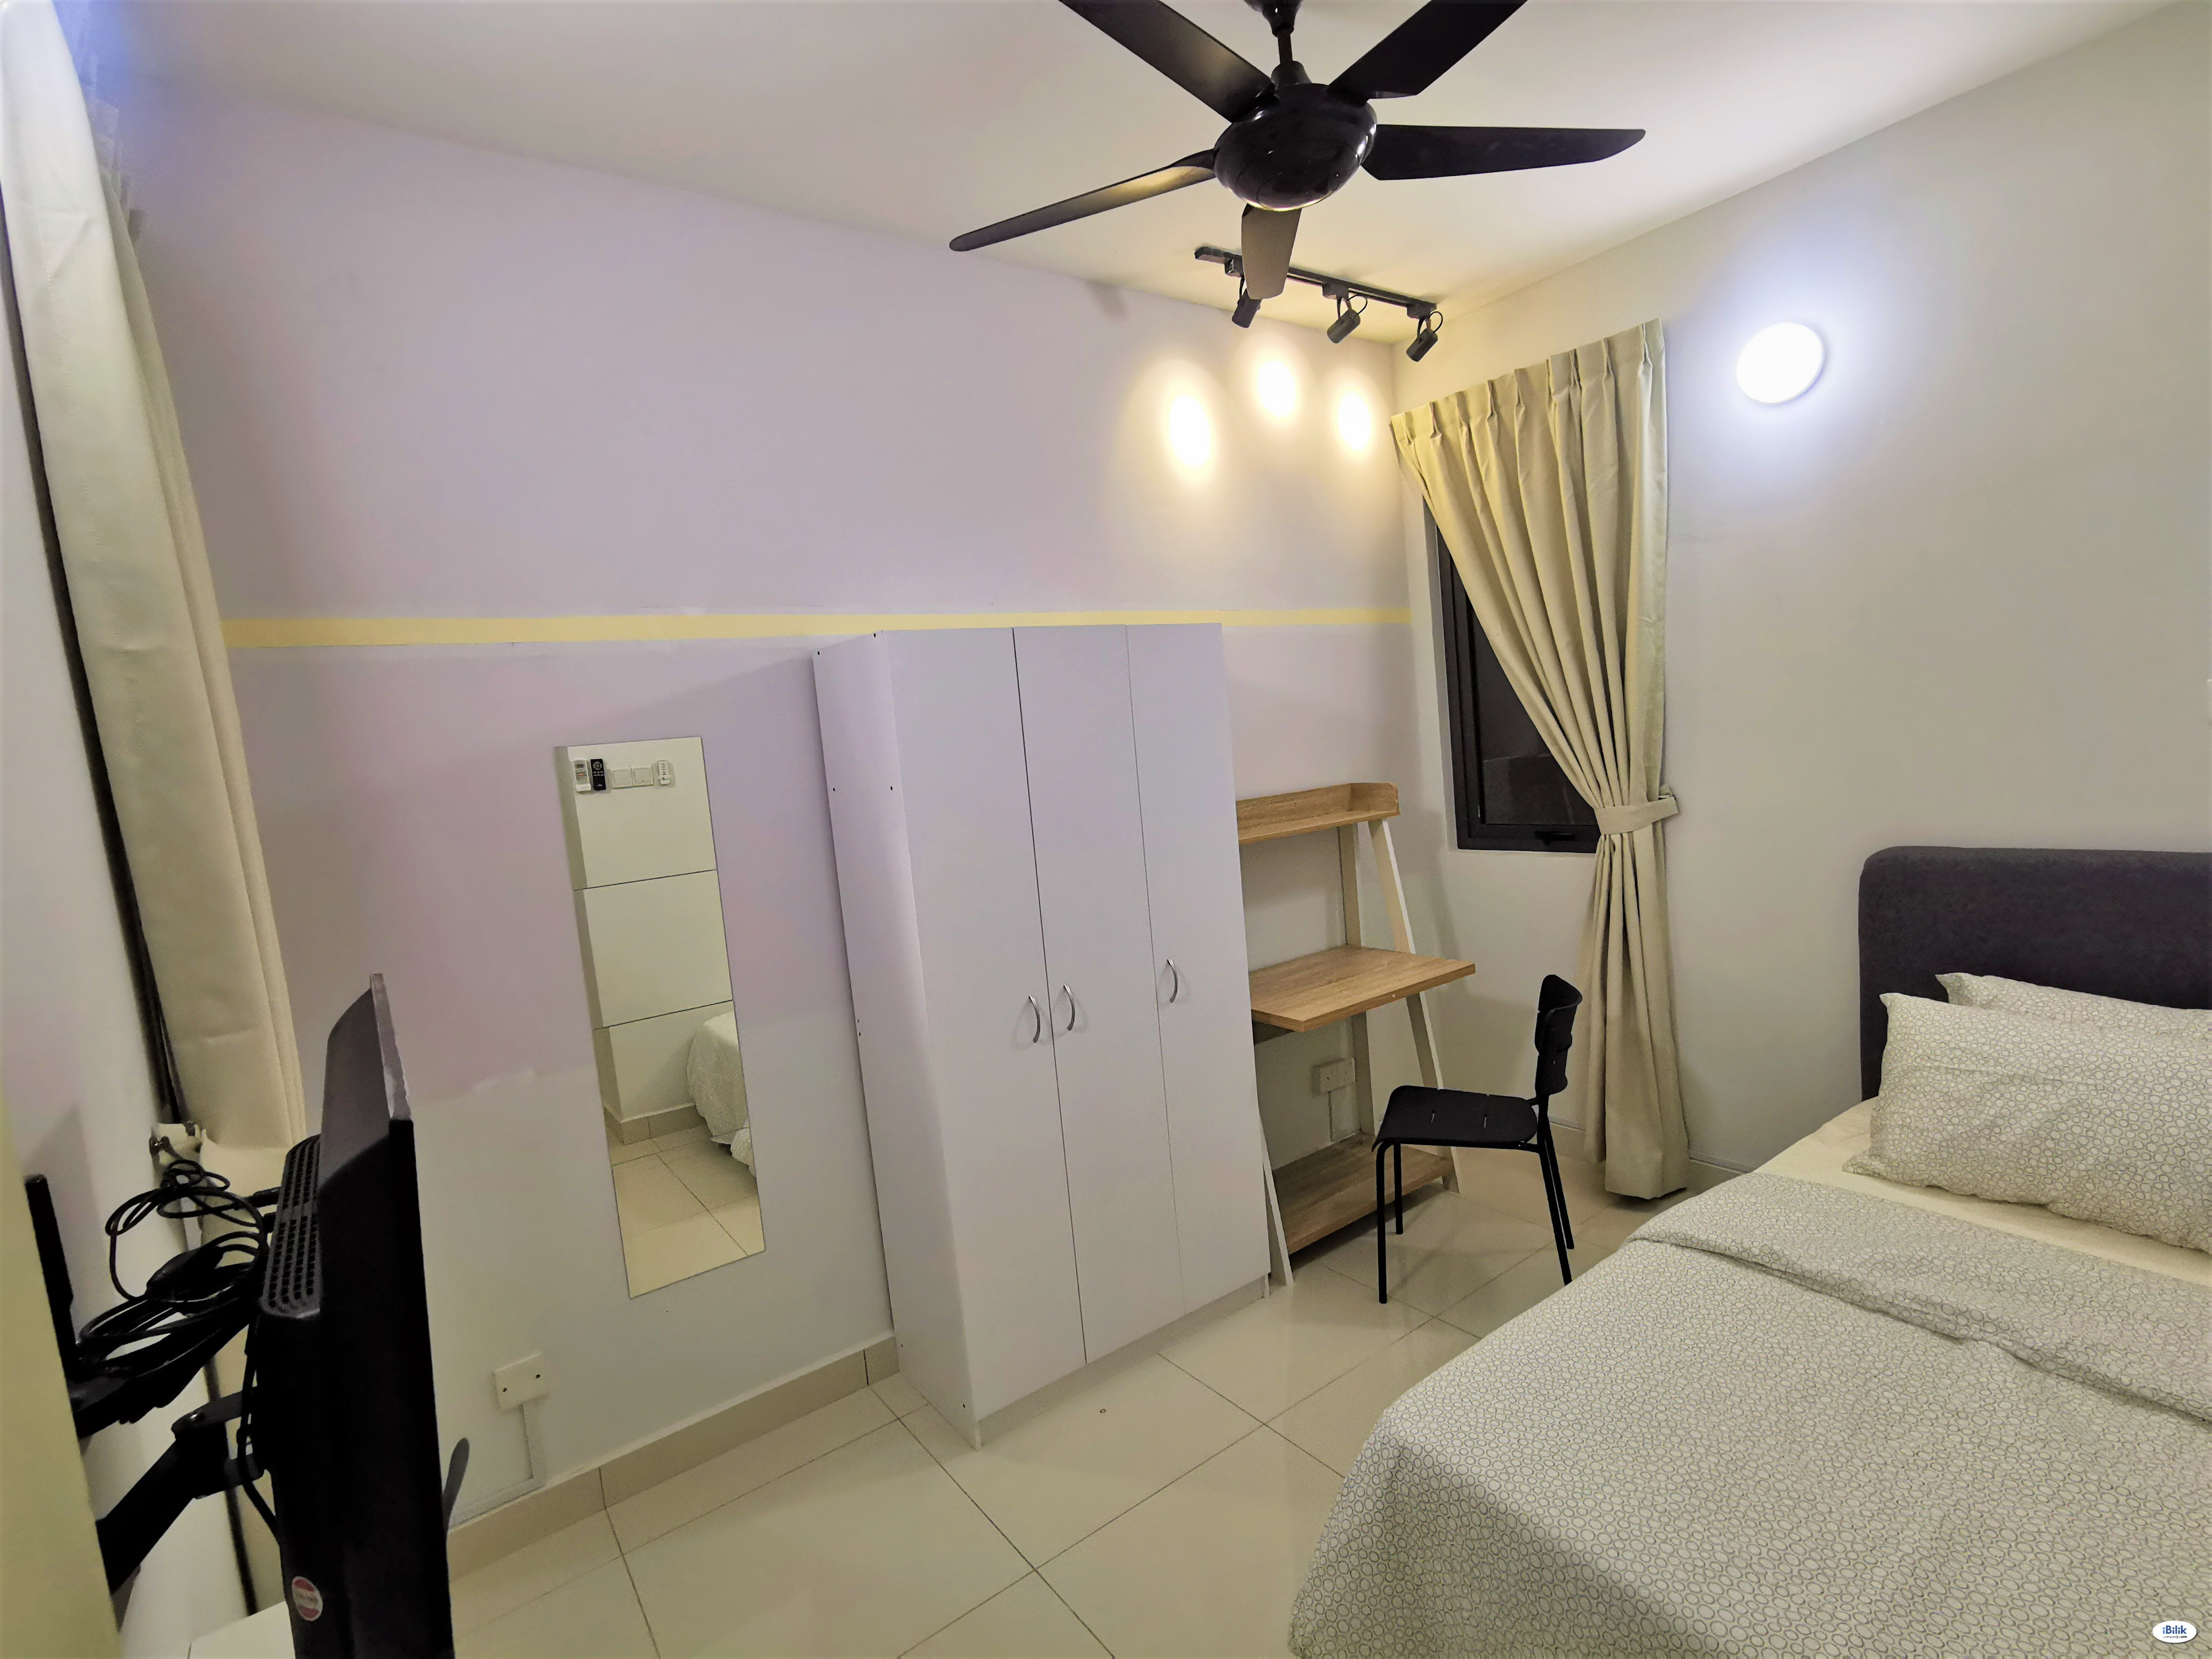 [Clean] Fully Furnished Single Room with FREE housekeeping, wifi